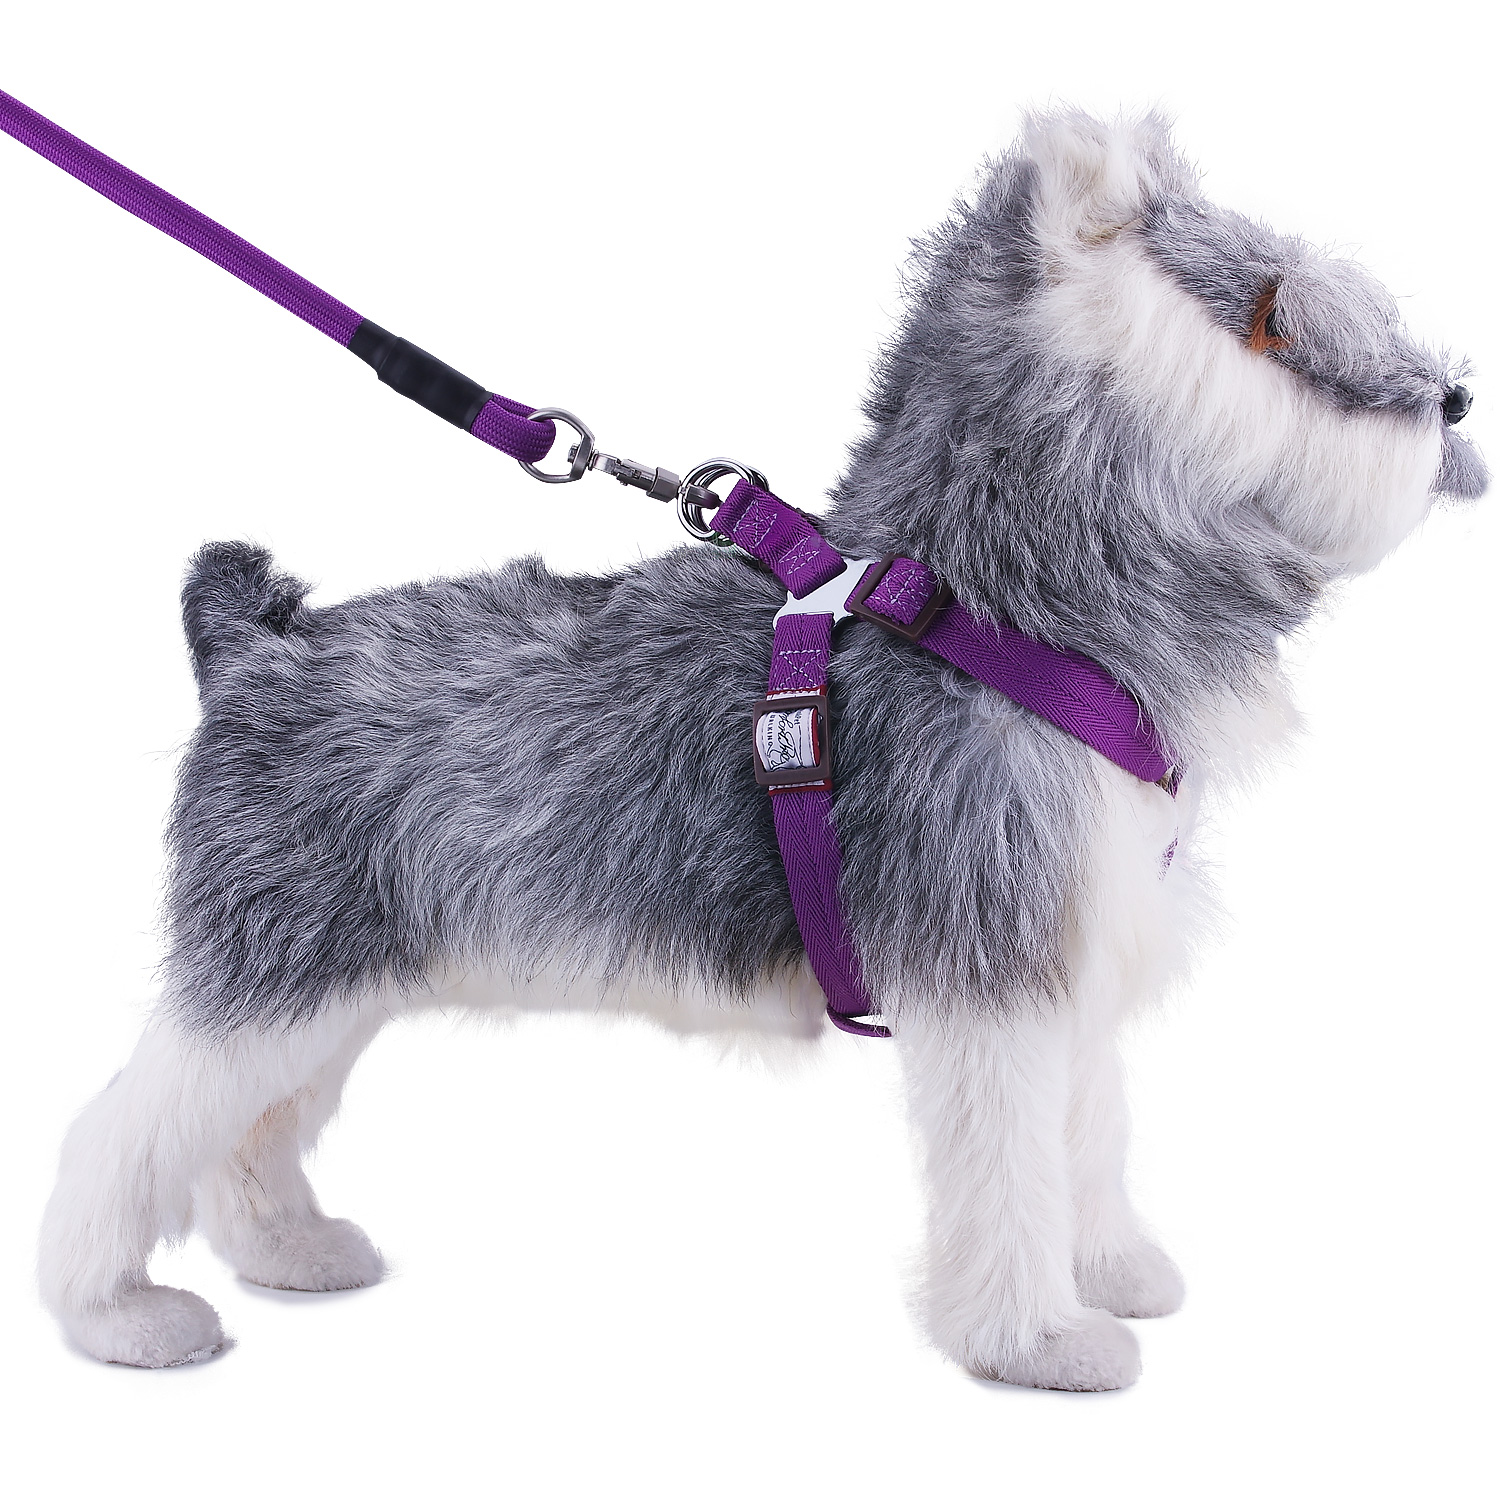 Dog Harness and Leash Set Heavy-Duty Rope Leash Adjustable No Pull Harness Vest